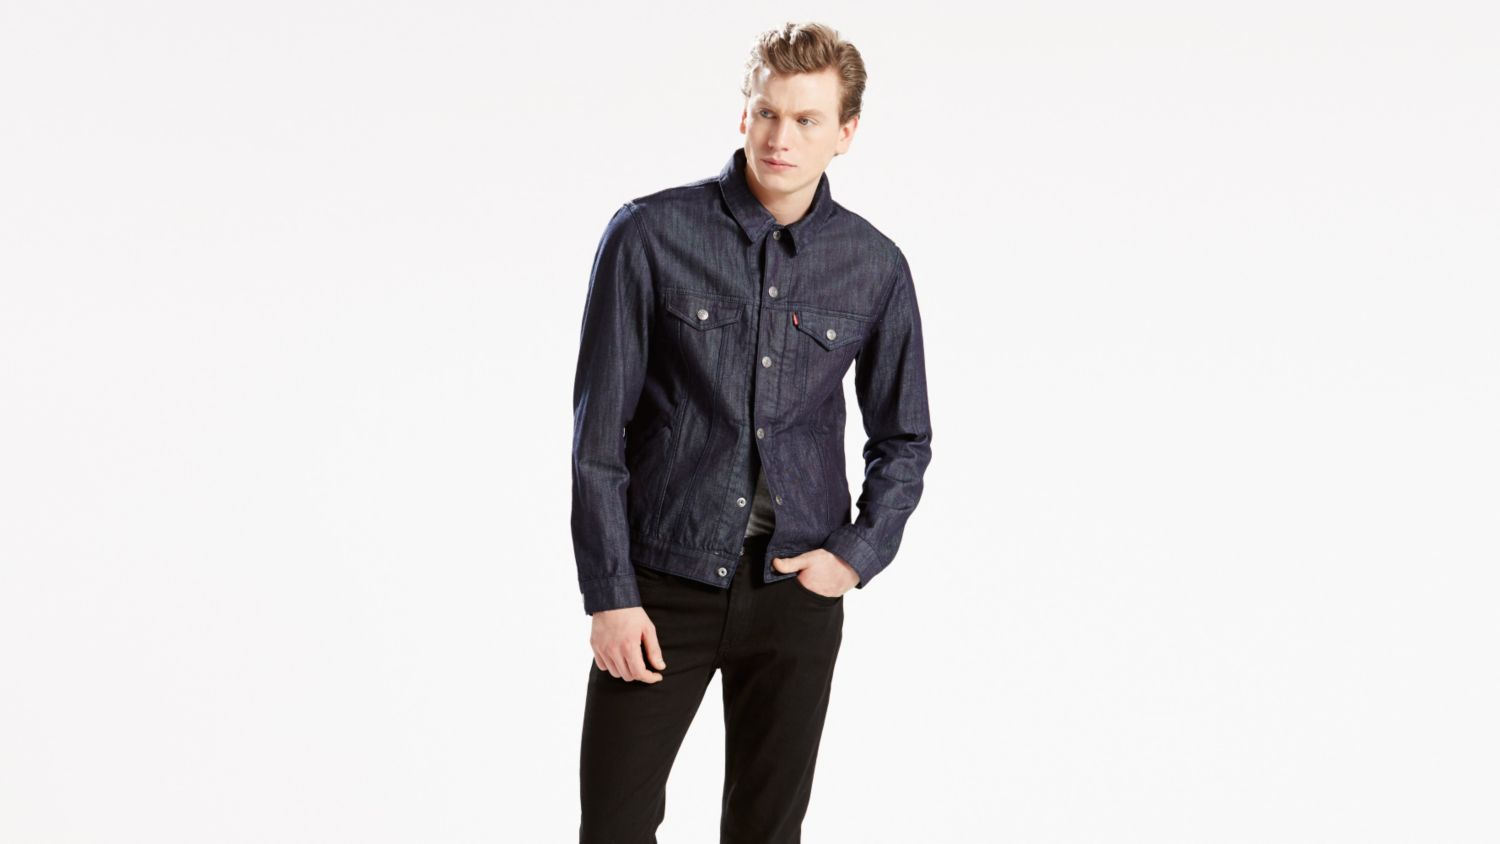 Levis Commuter Jacket | Levis Commuter 504 | Commuter Cycling Clothes